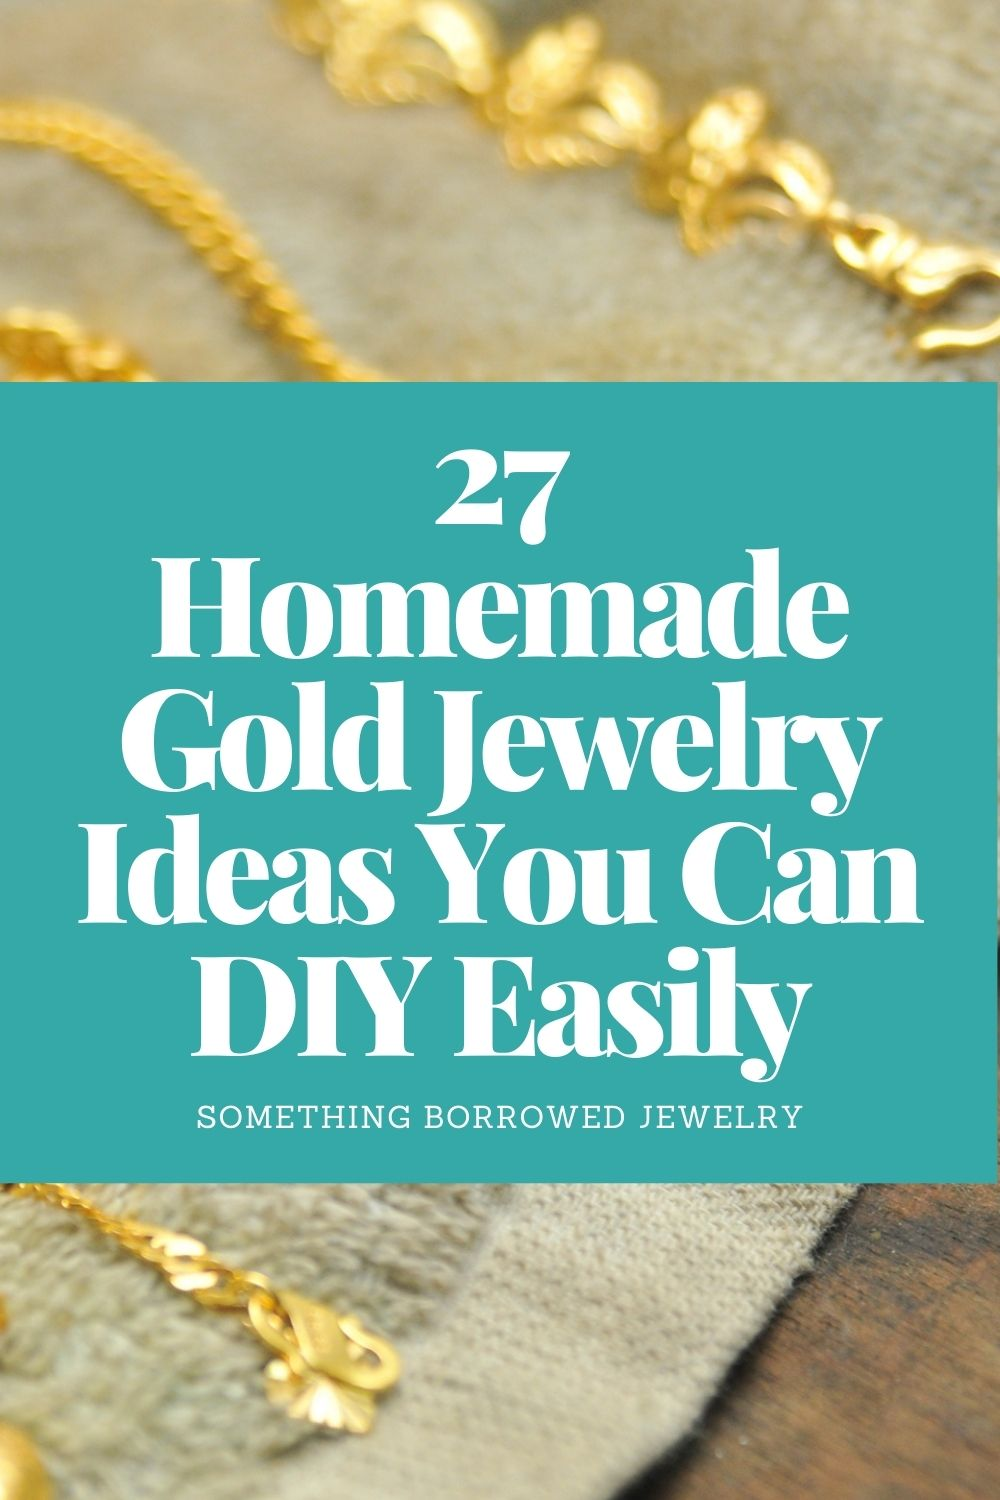 27 Homemade Gold Jewelry Ideas You Can DIY Easily pin